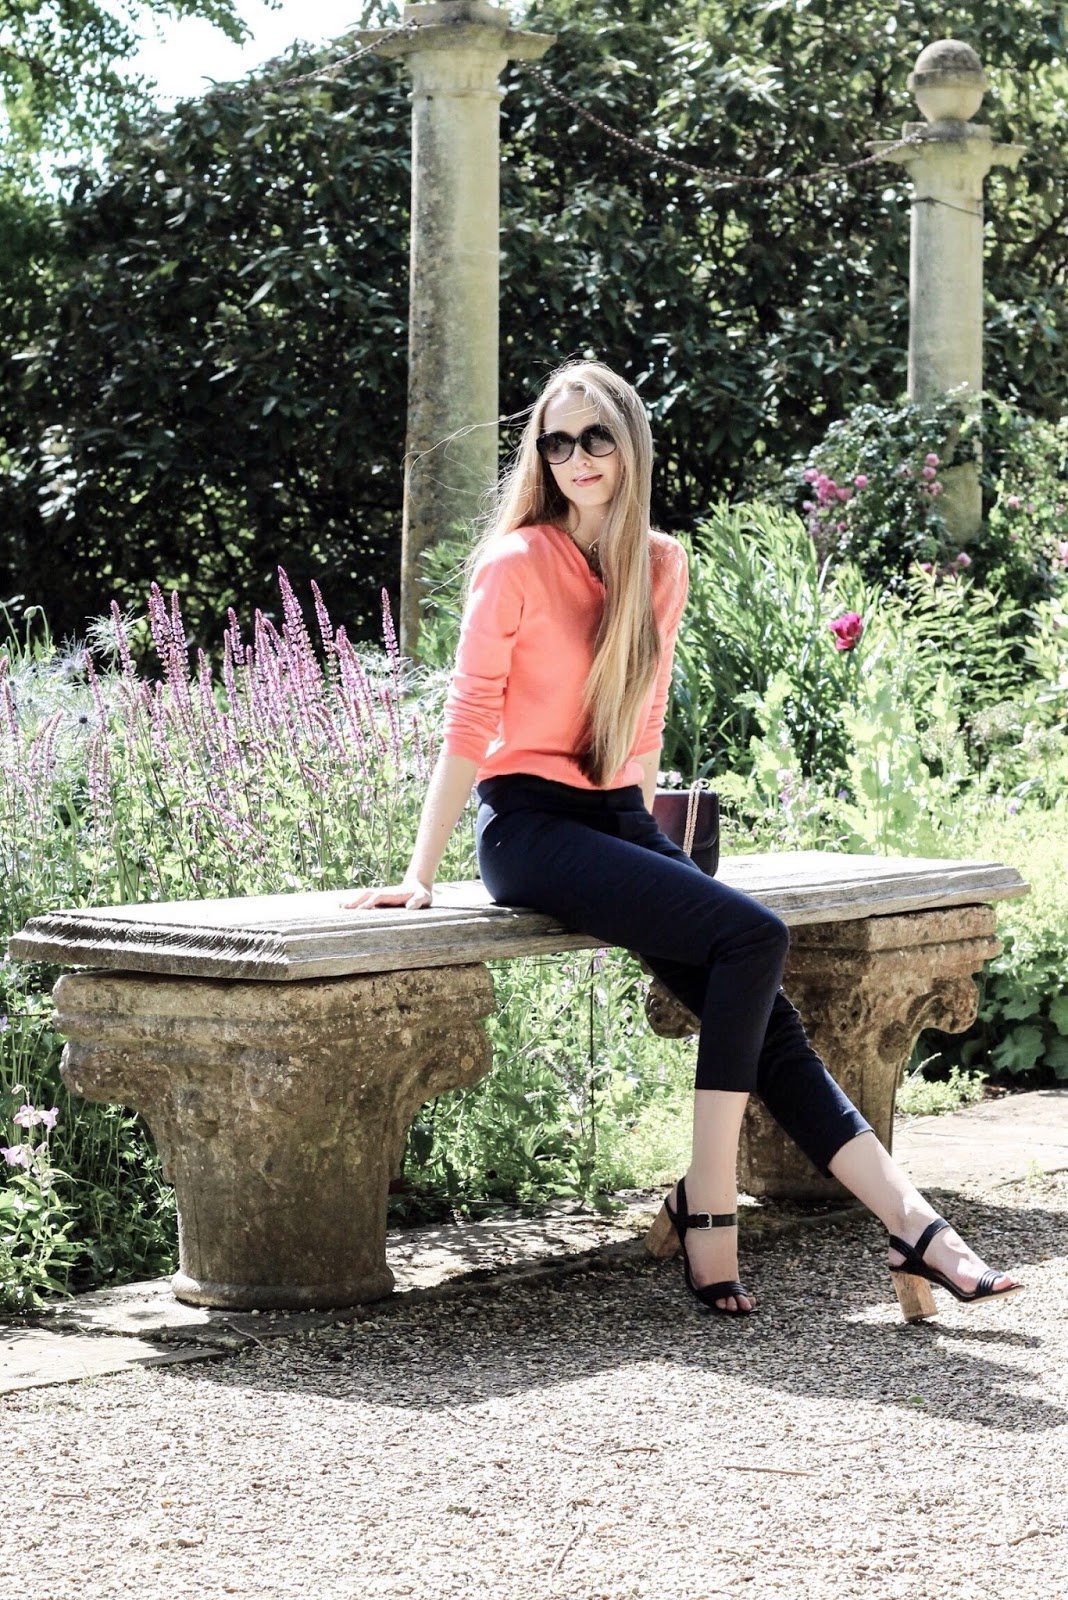 Casual smart outfit for visiting formal gardens